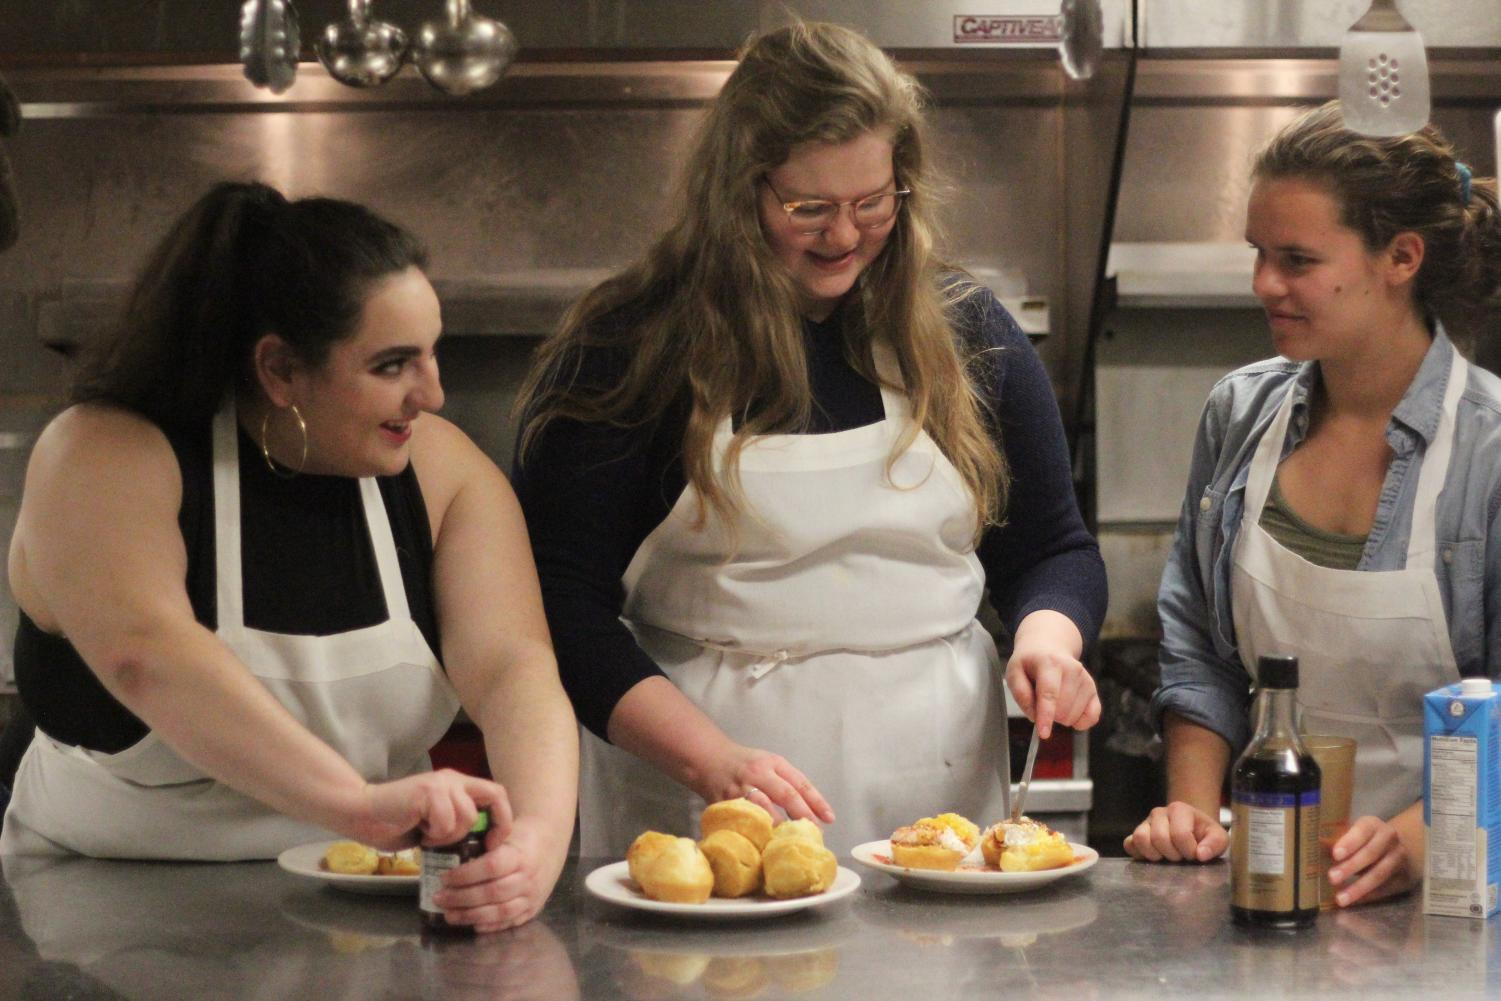 College junior Cat Robinson, College first-year Lily Lansdell, and College junior Katherine Carson baking late at night in the Pyle Co-op kitchen.